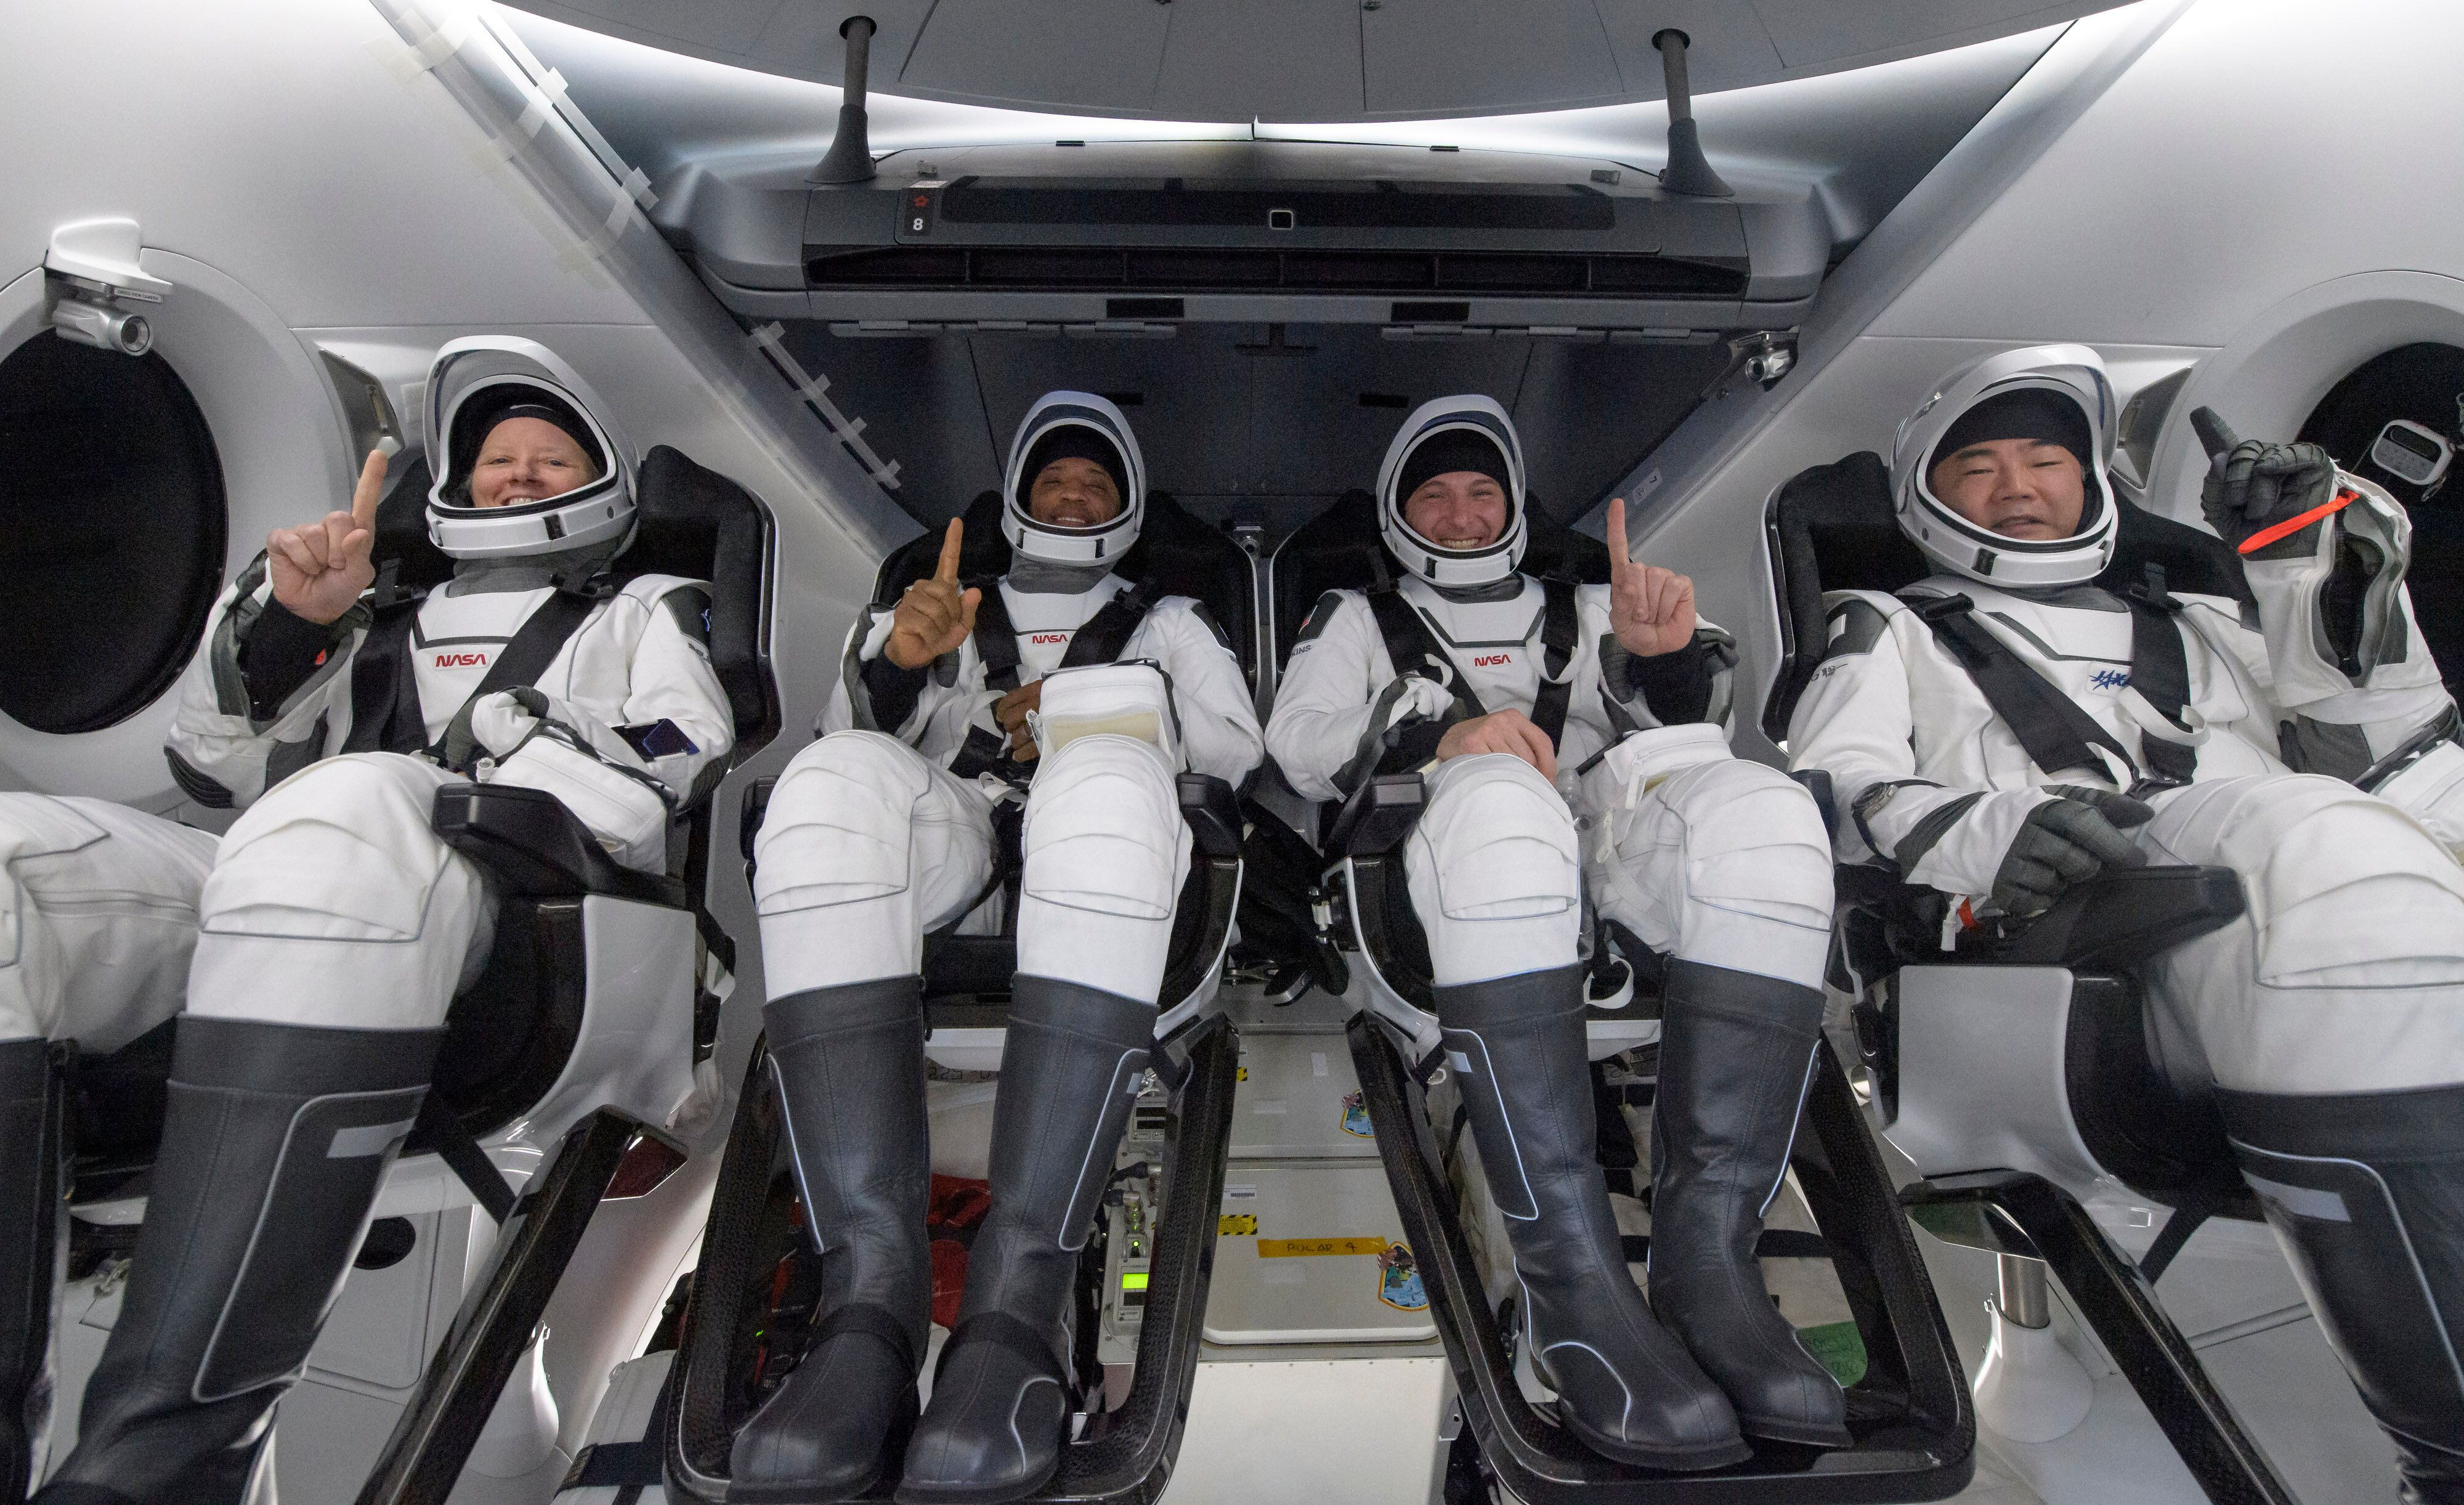 PANAMA CITY, FL. - MAY 02: In this NASA handout, NASA astronauts Shannon Walker, left, Victor Glover, Mike Hopkins, and Japan